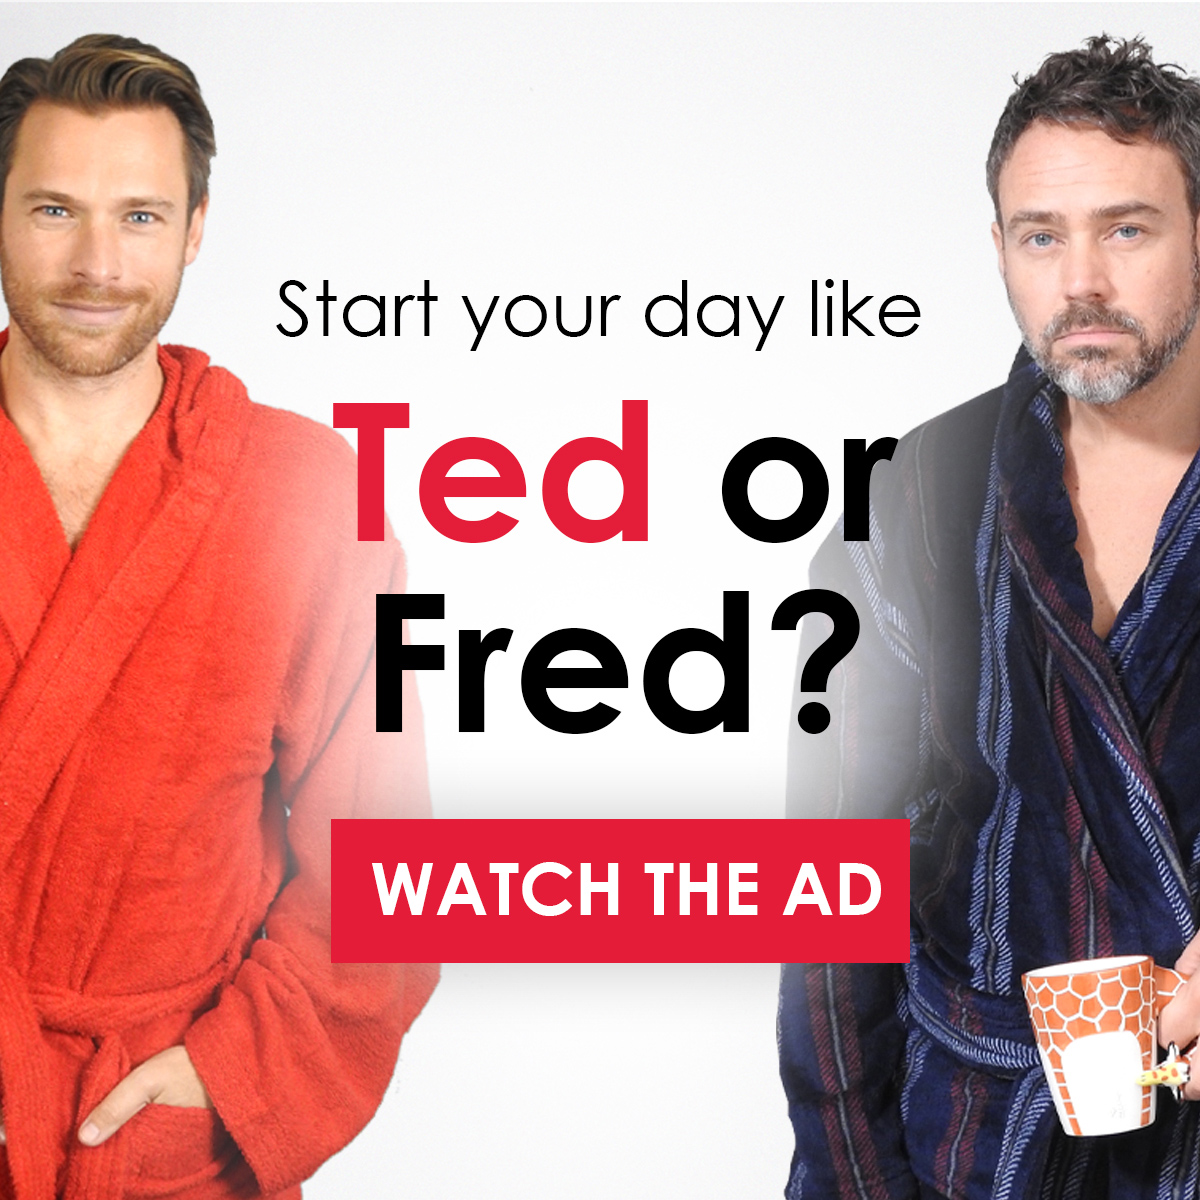 Watch The Ad